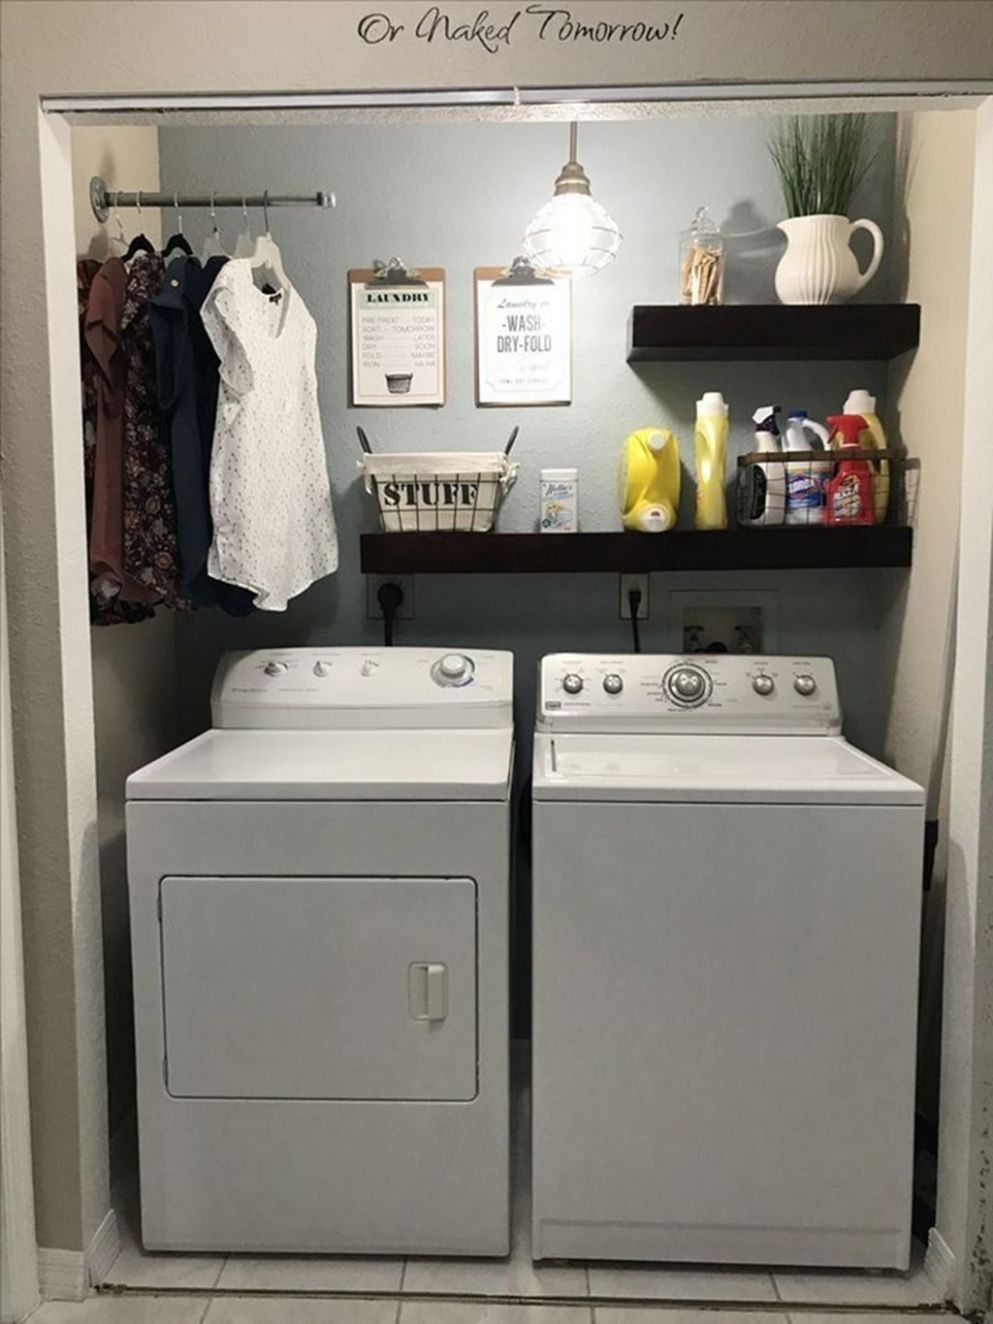 9 Minimalist Small Laundry Room Design And Decor Ideas | Laundry ..